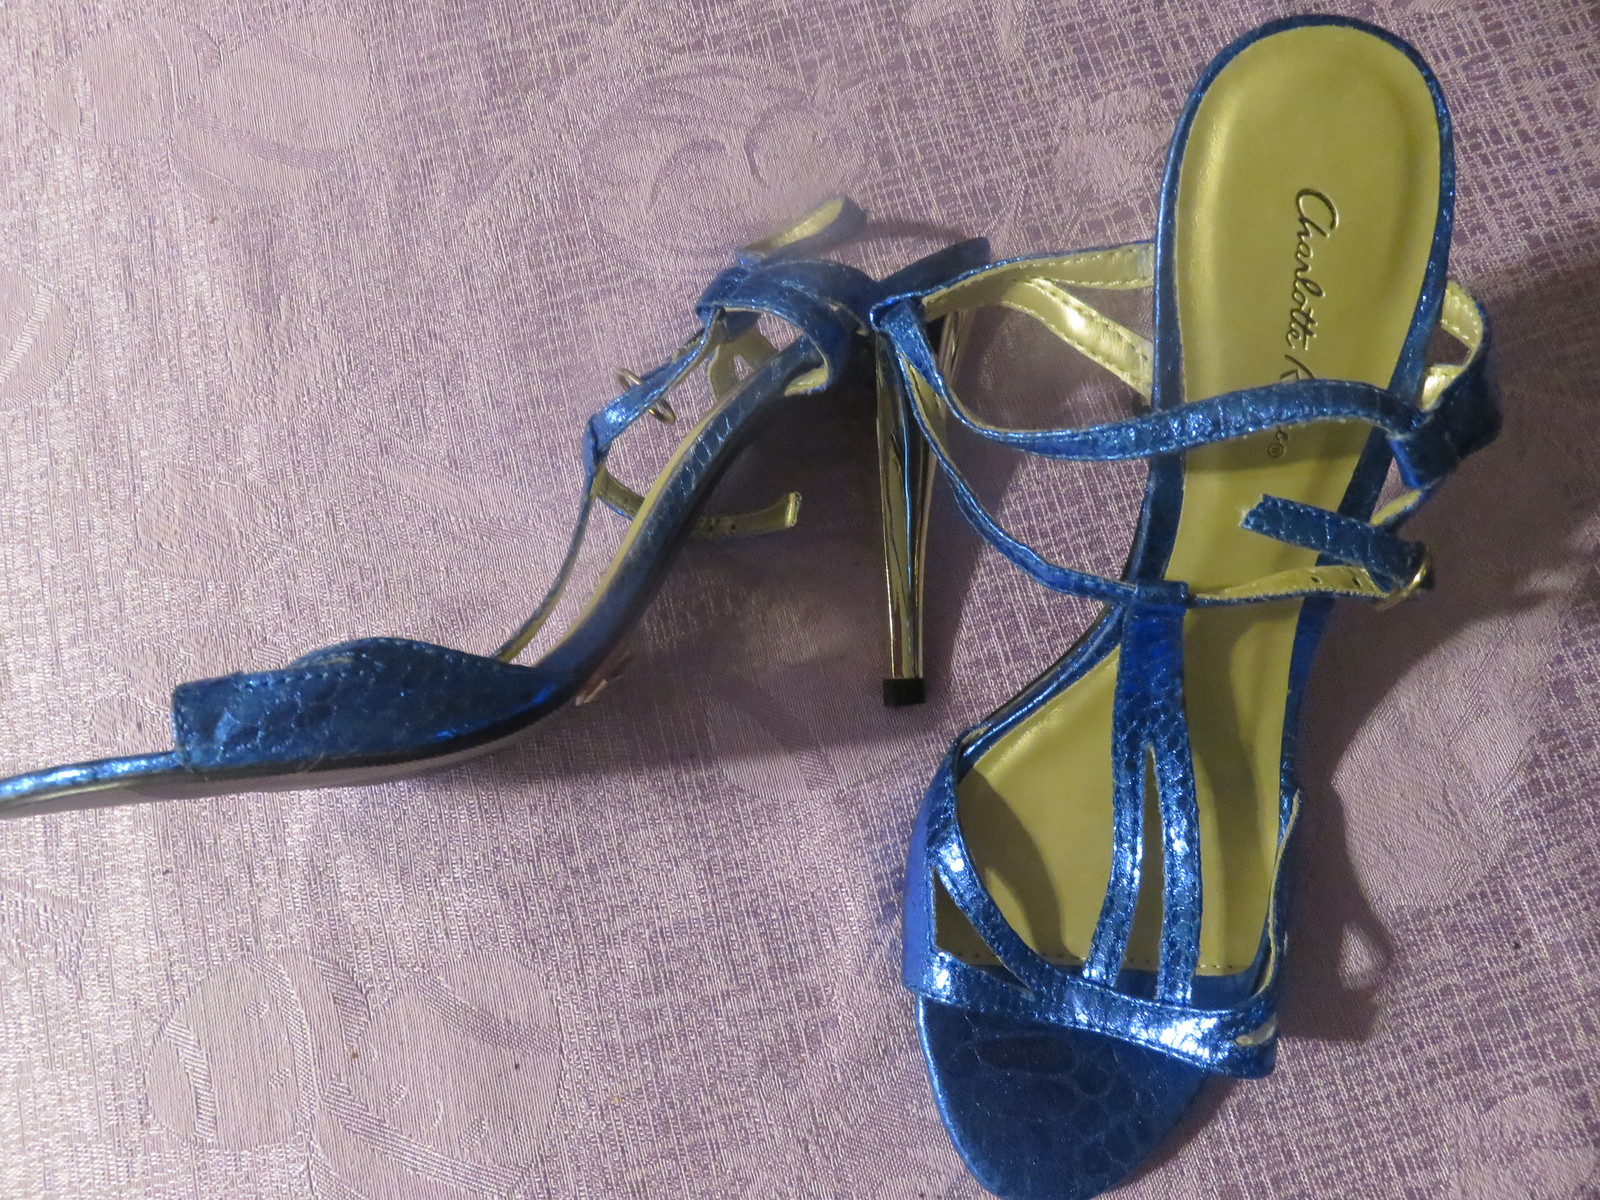 bebf81572b4 CHARLOTTE RUSSE HIGH HEELS SHOES METALLIC BLUE SIZE 6 GREAT FOR PROM NEW